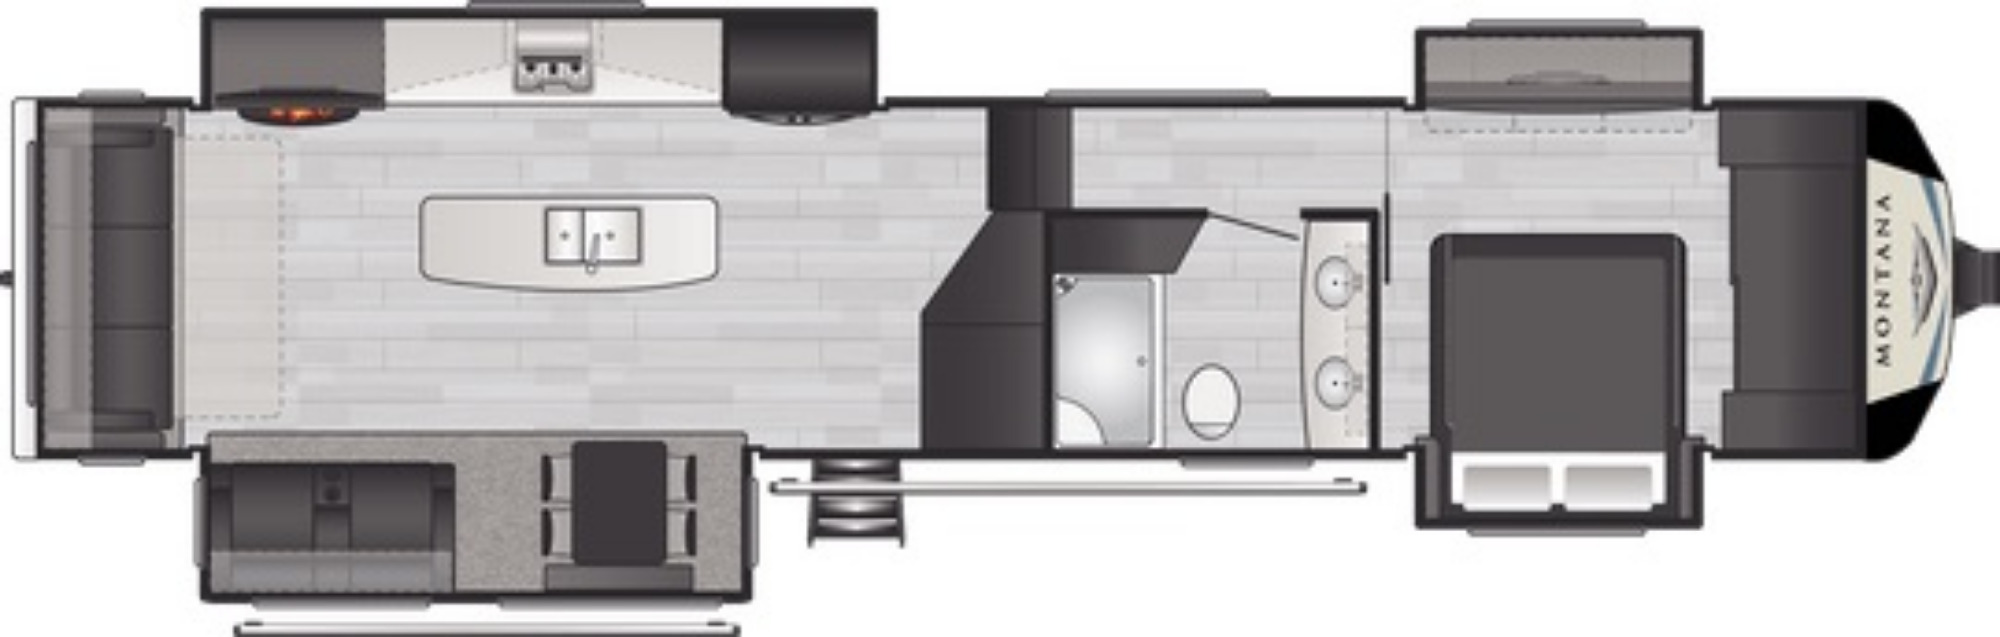 View Floor Plan for 2021 KEYSTONE MONTANA 3780RL